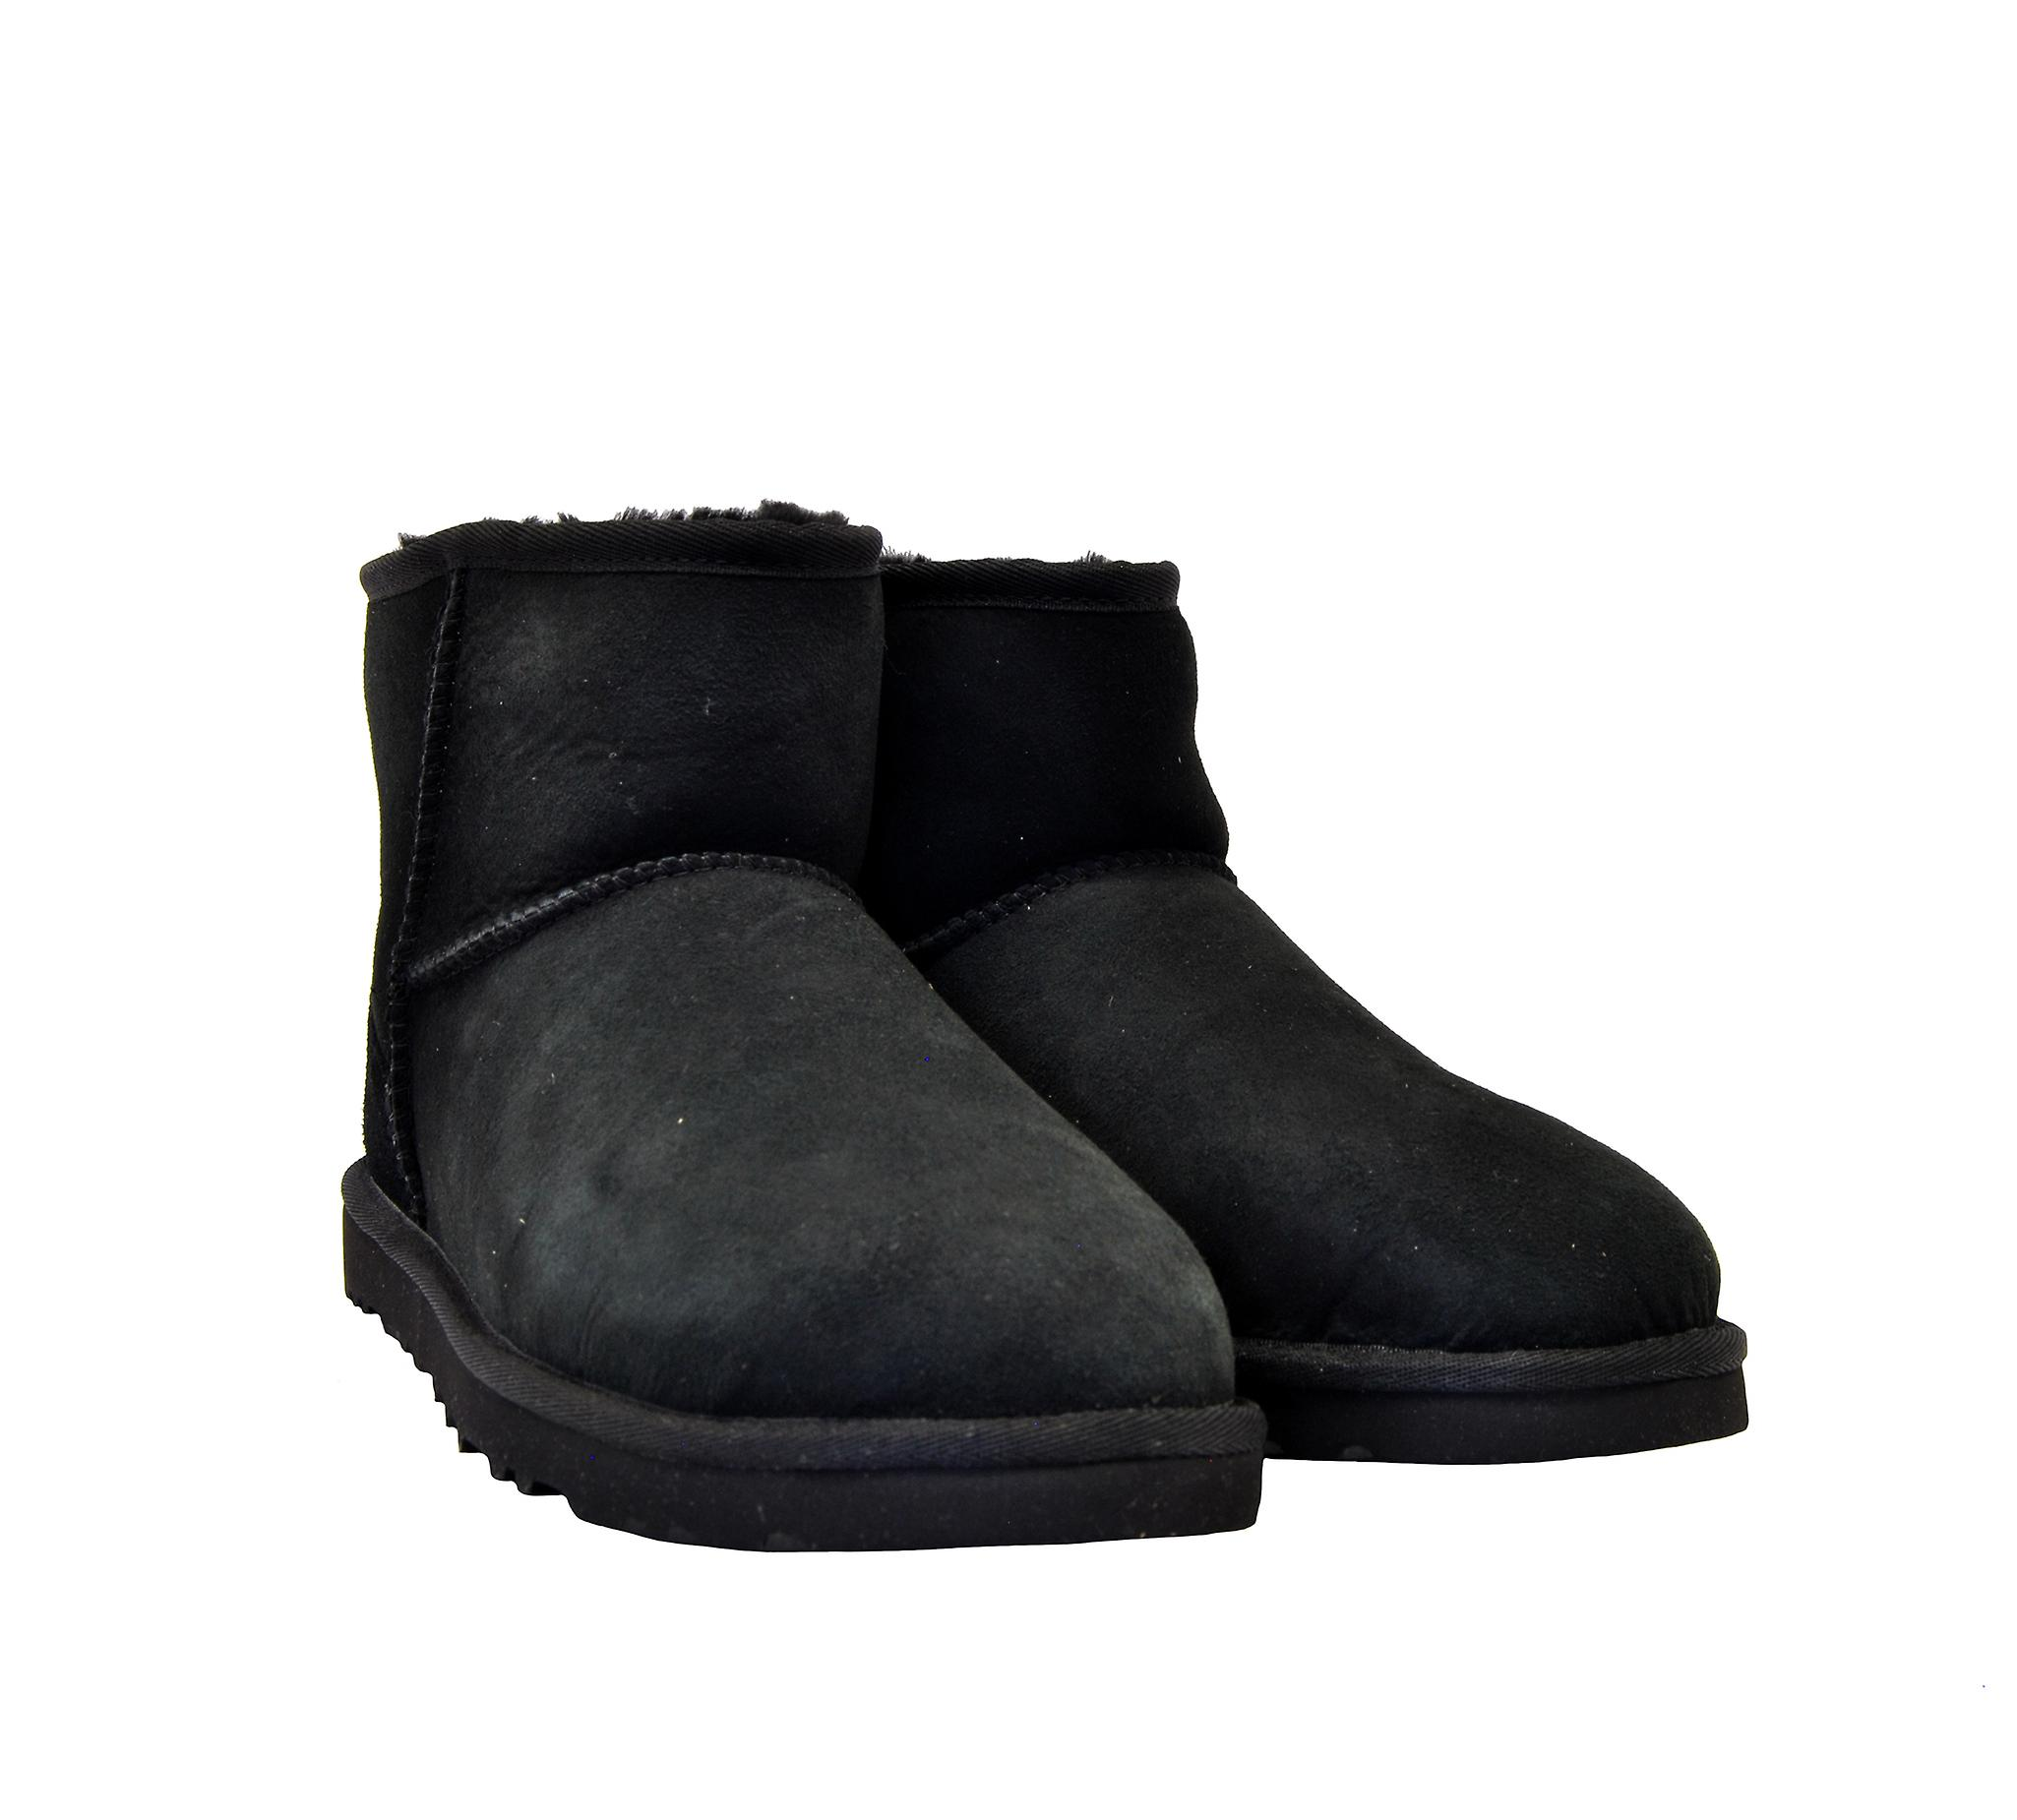 Ugg Miniclassiciiblacm Men-apos;s Black Suede Ankle Boots